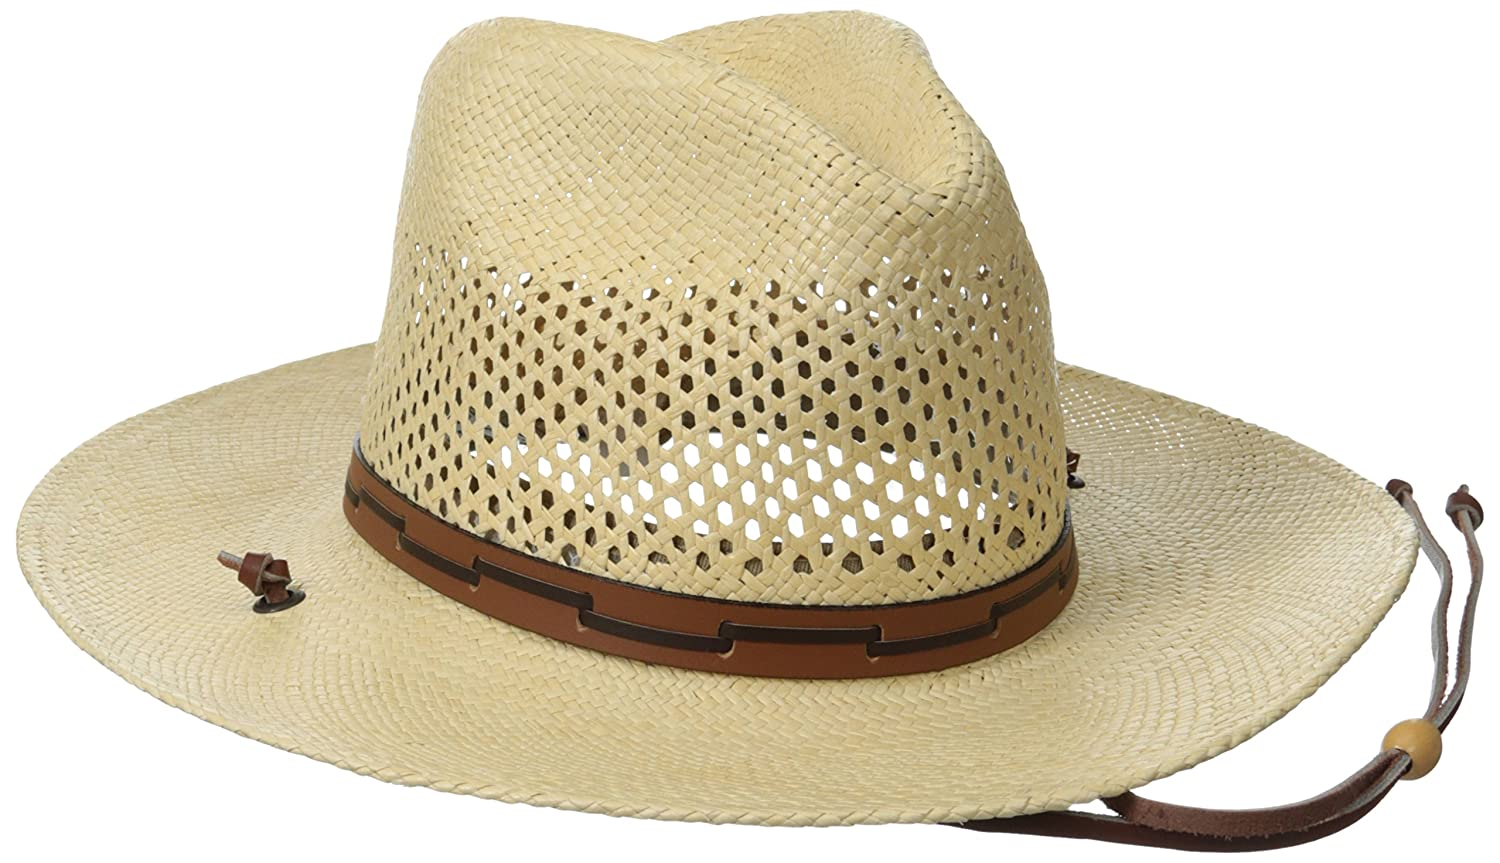 7939a9eb Stetson Men's Stetson Airway Vented Panama Straw Hat at Amazon Men's  Clothing store: